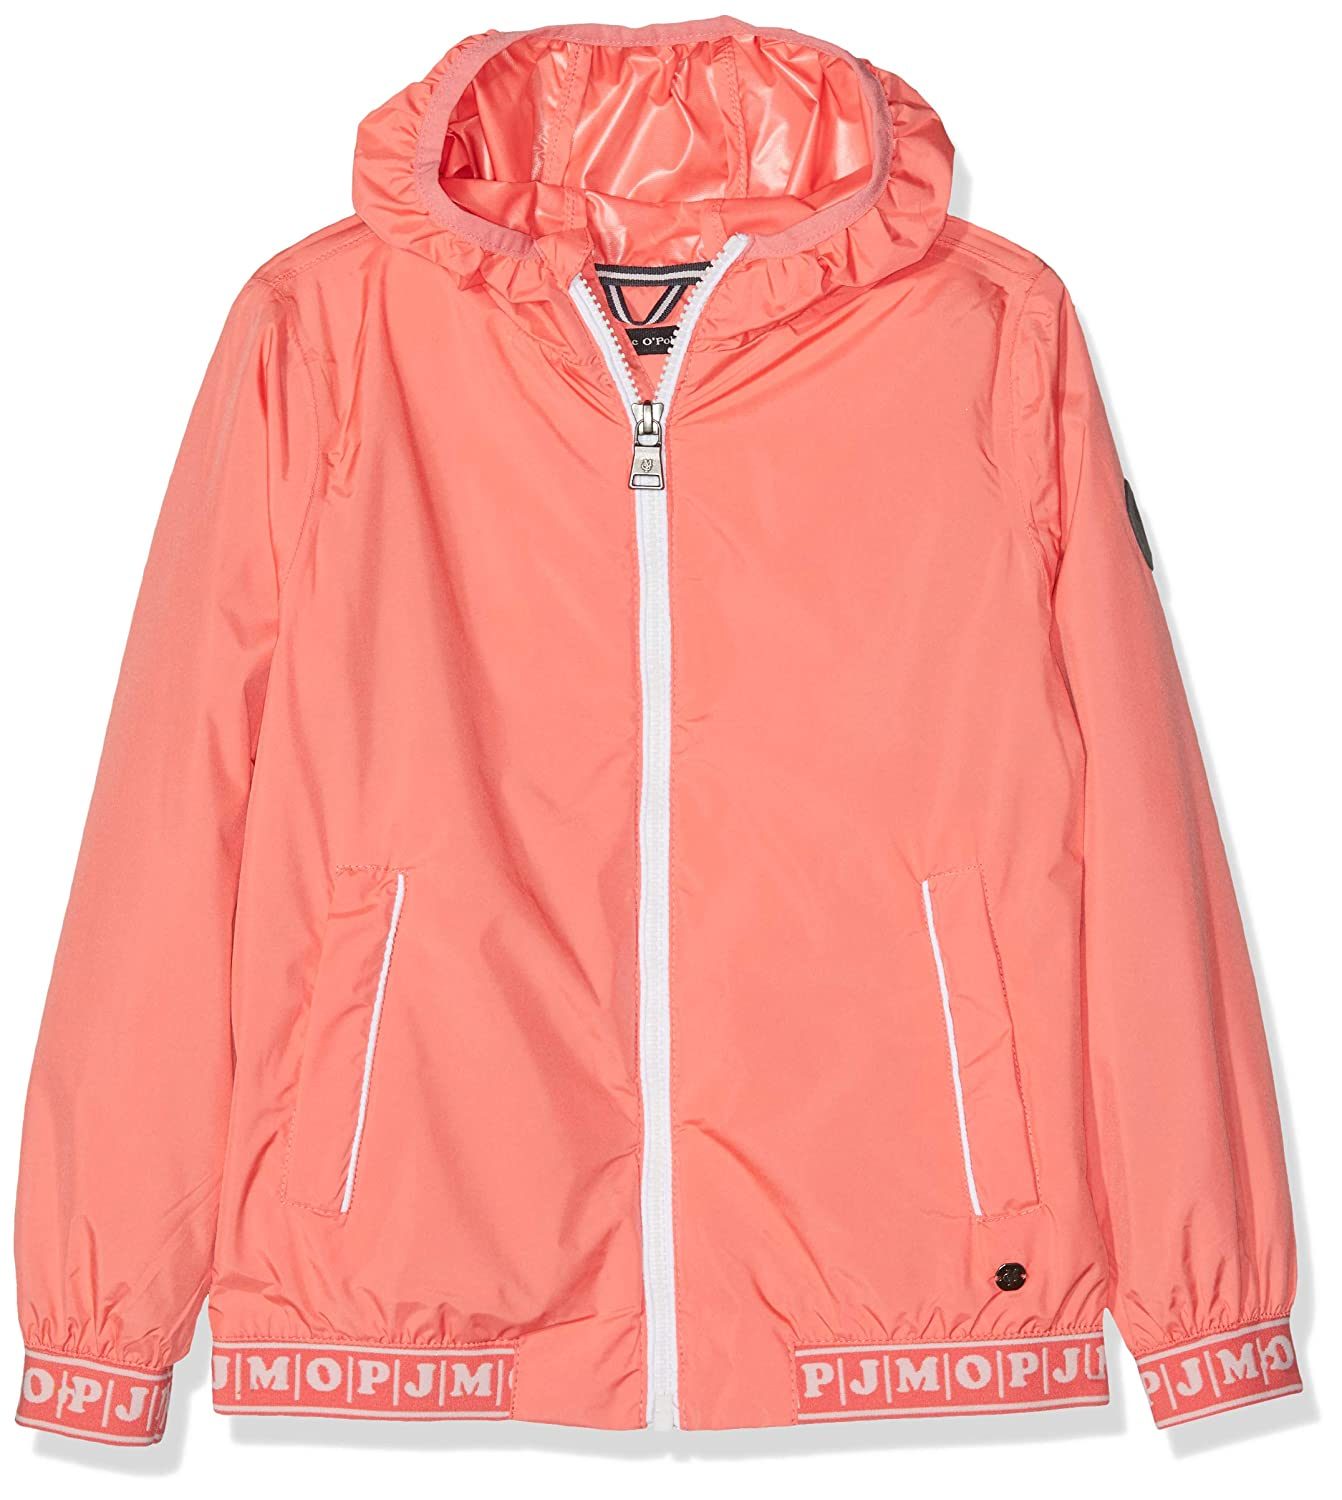 Rose (Georgia Peach rose 2830)  Marc O' Polo Enfants Windbreaker Mit Kapuze Veste Imperméable Fille